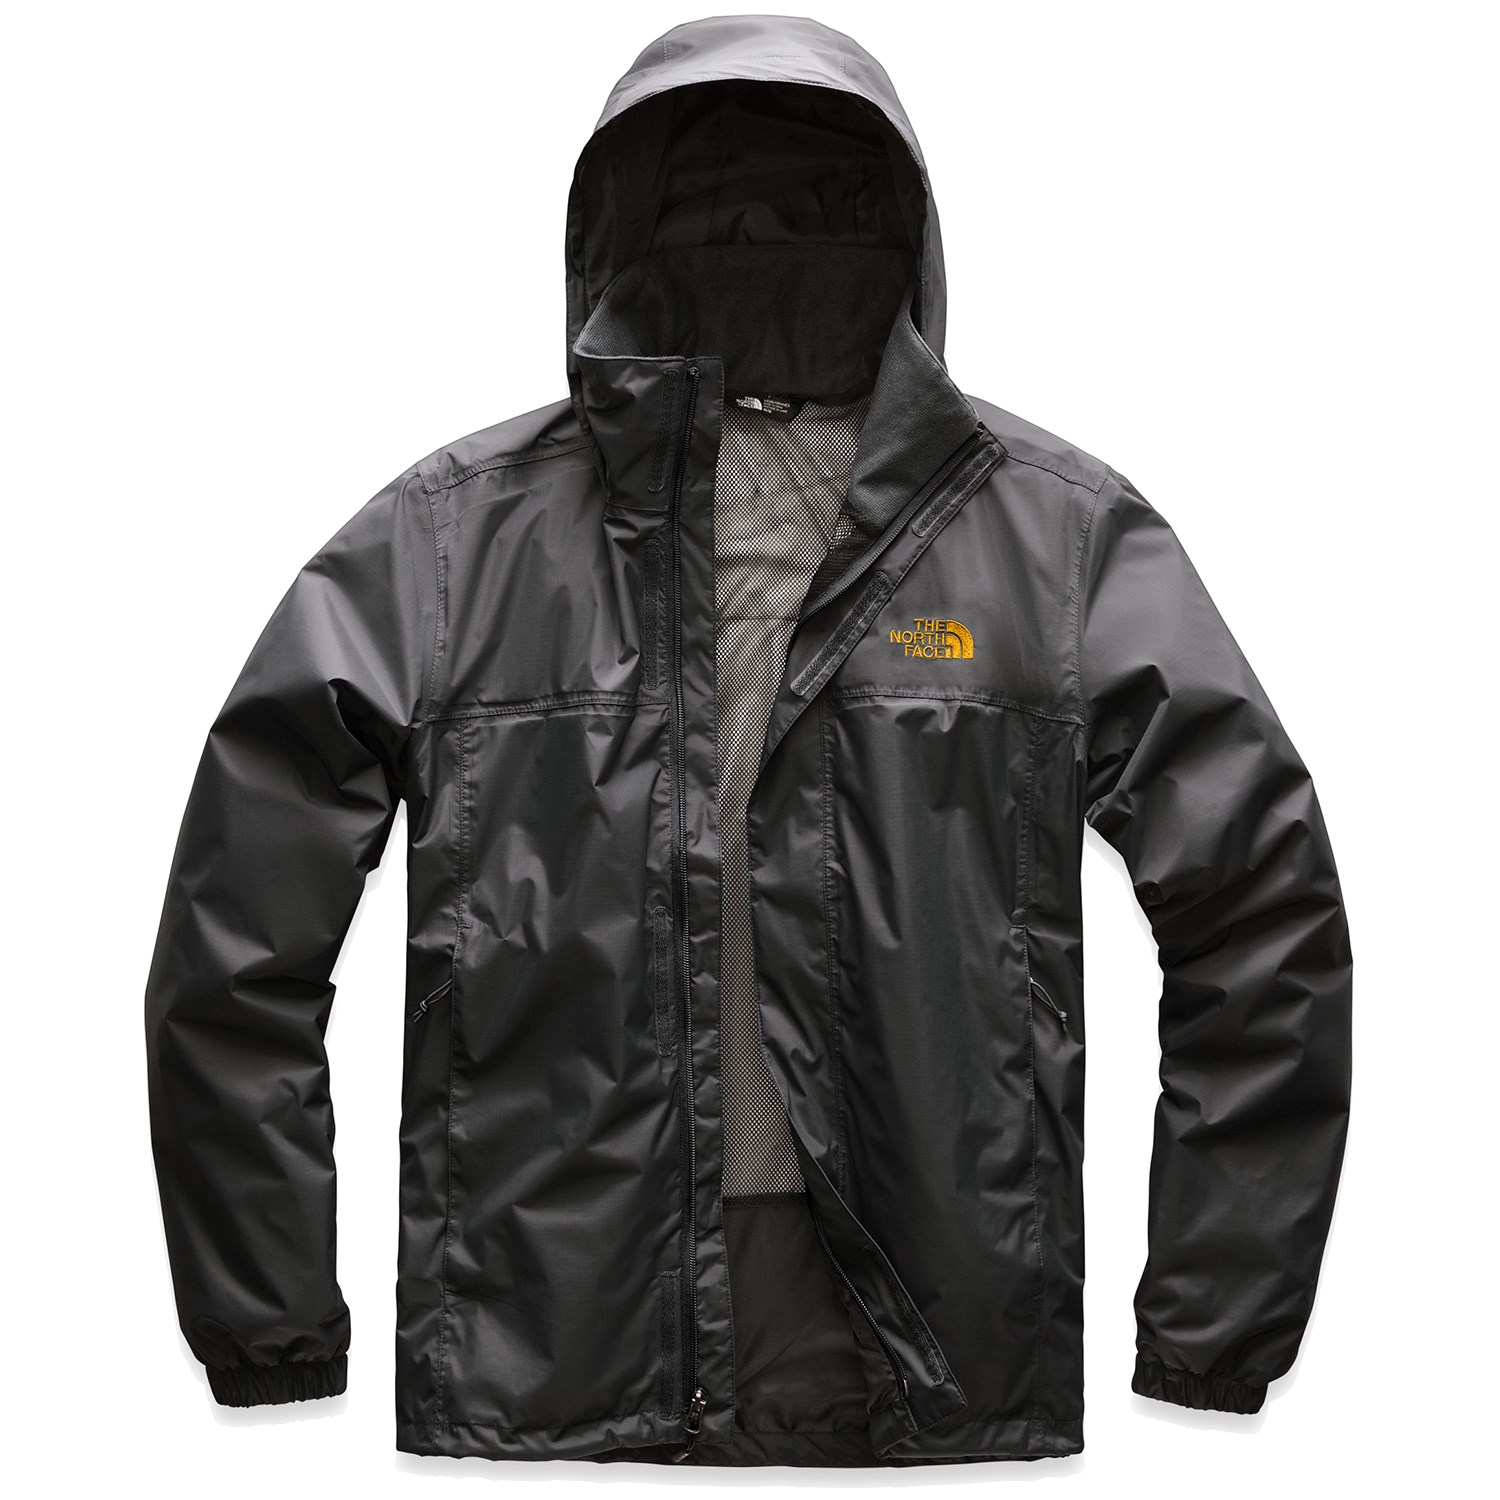 095e48374 The North Face Resolve 2 Jacket